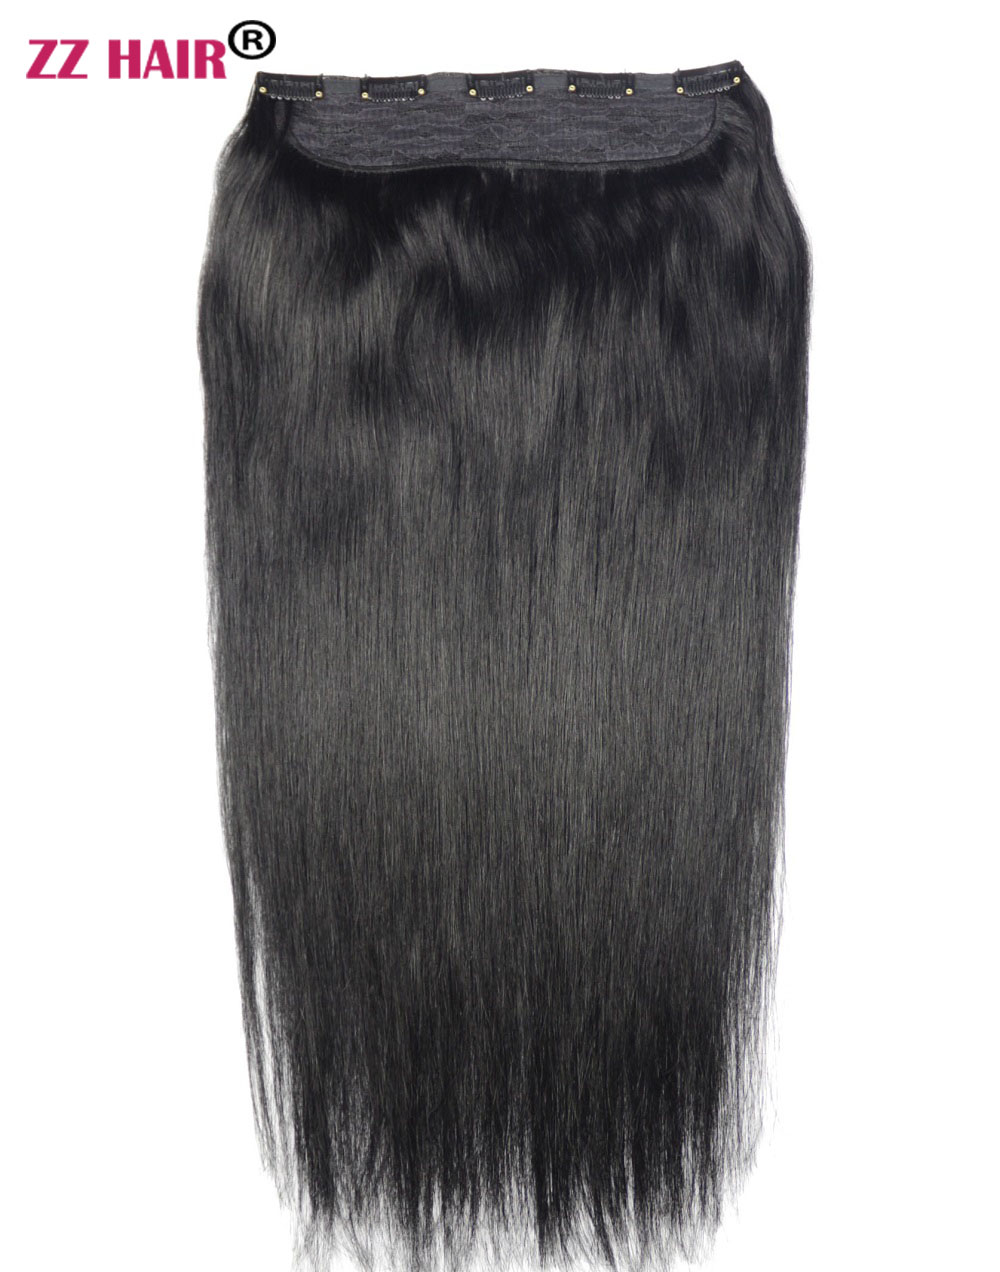 """ZZHAIR 24"""" 61cm 100% Brazilian Hair 5 Clips In Human Hair Extensions 1Pcs 150g One Piece Set Straight Natural Hair Non-remy"""